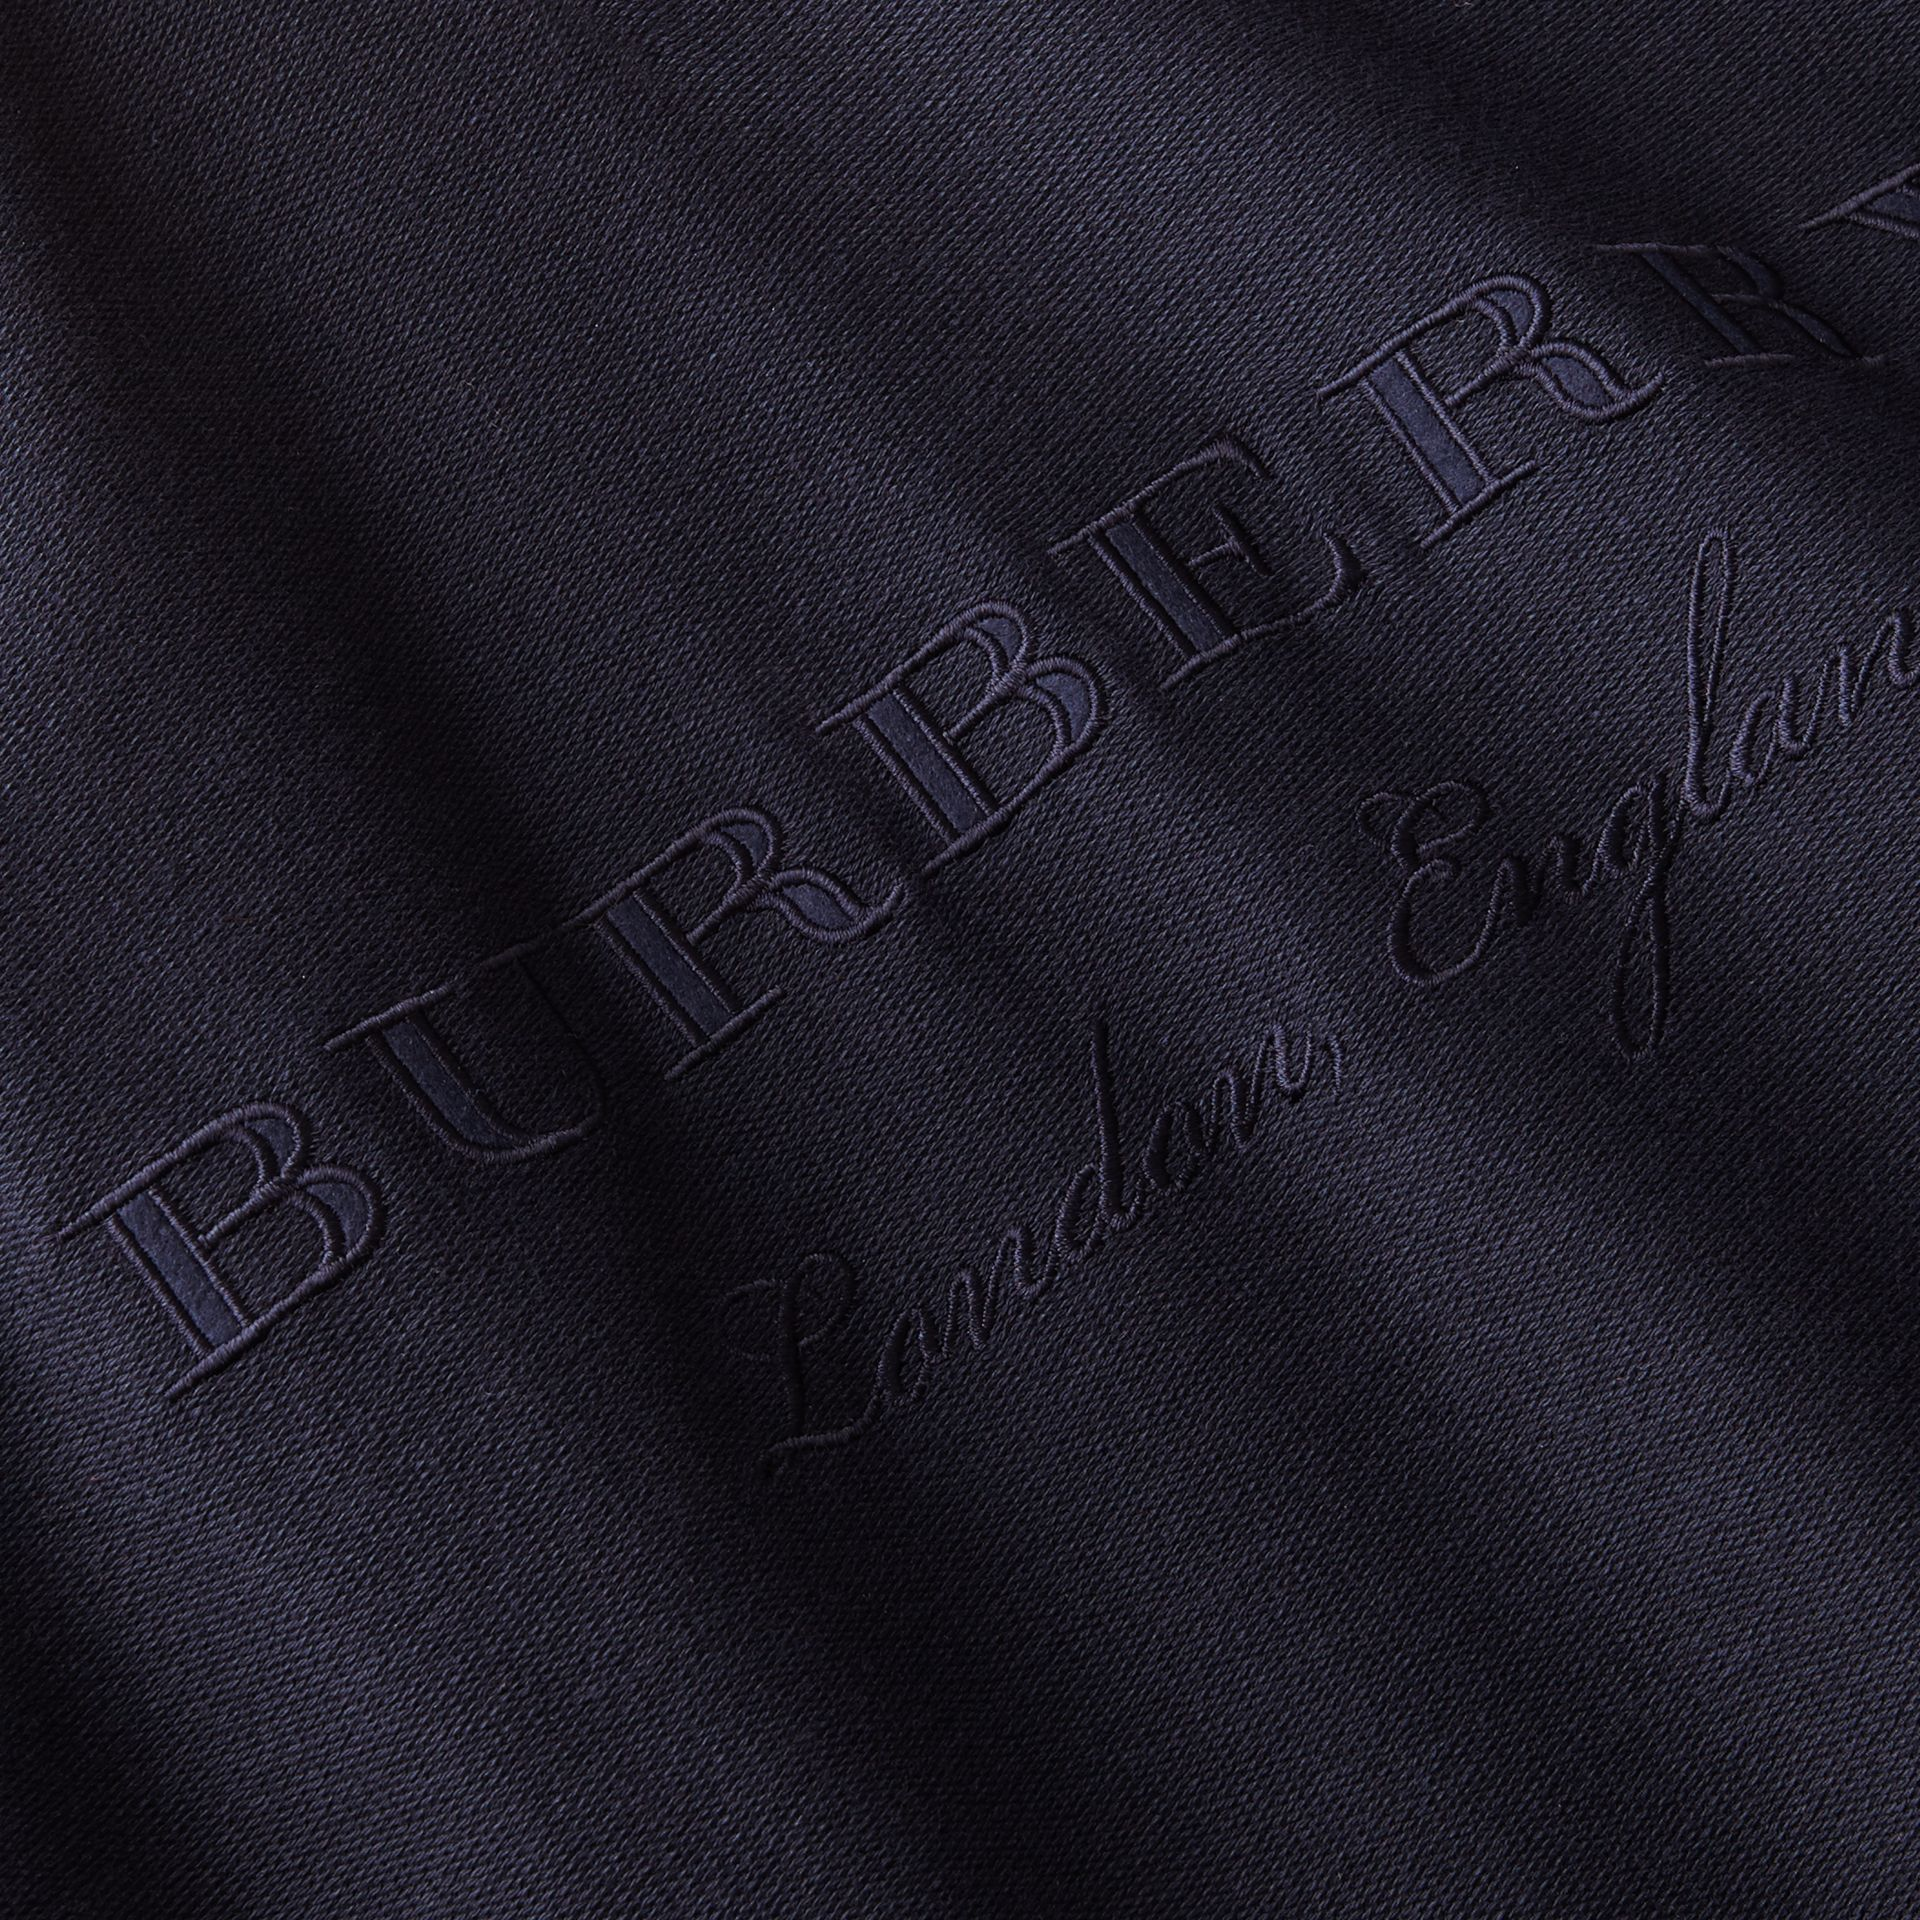 Embroidered Motif Cotton-blend Jersey Sweatshirt in Navy - Men | Burberry Australia - gallery image 2